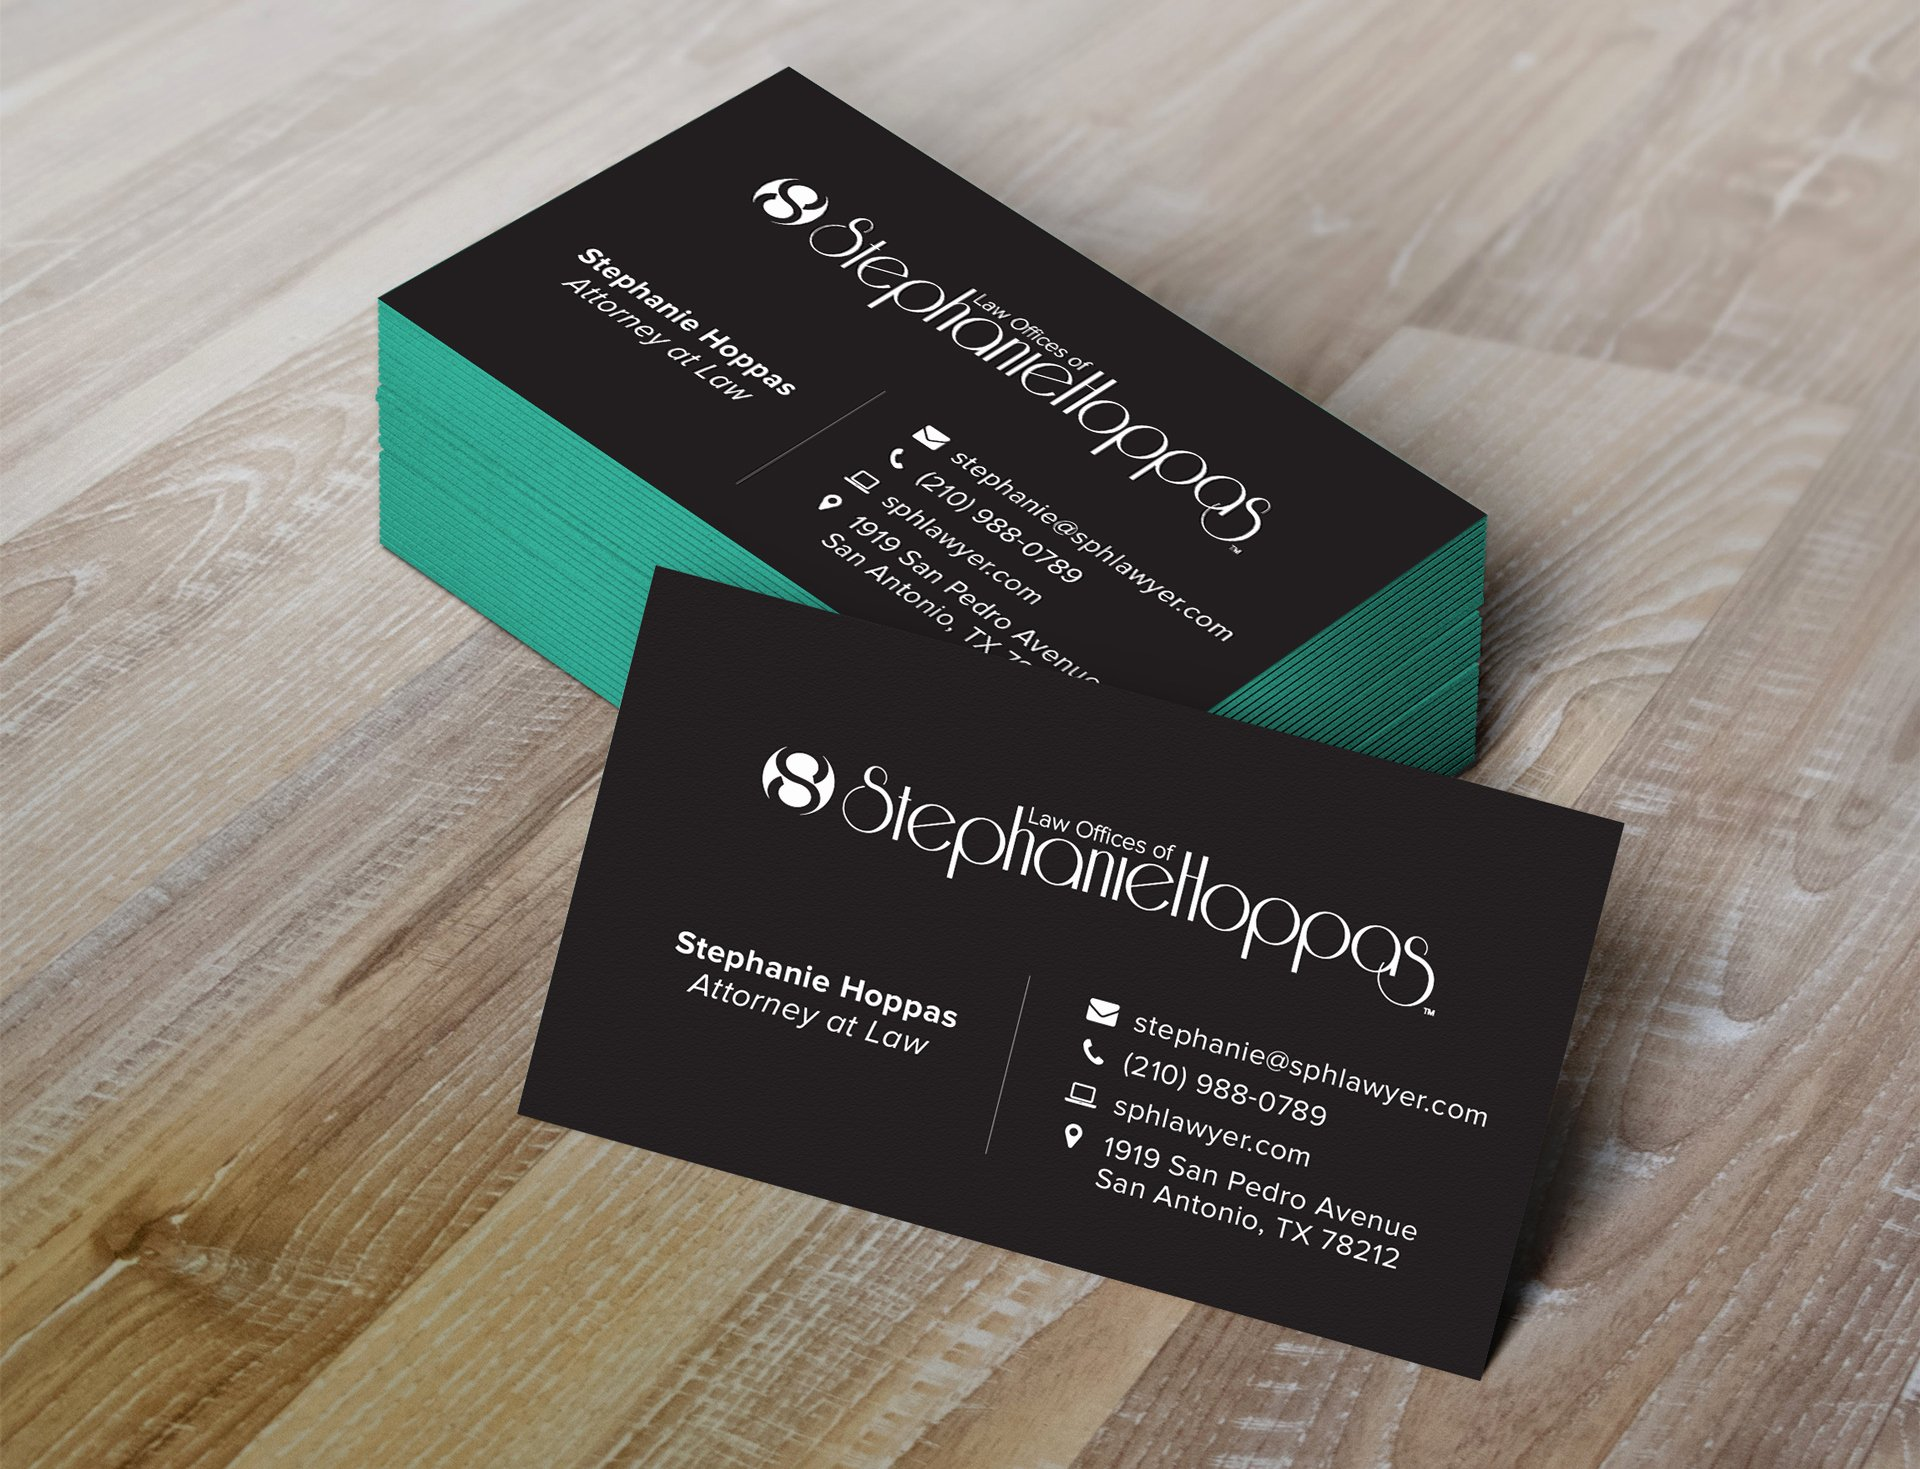 Law Office Business Cards Inspirational Identity Set for the Law Fices Of Stephanie Hoppas Concept Incarnate